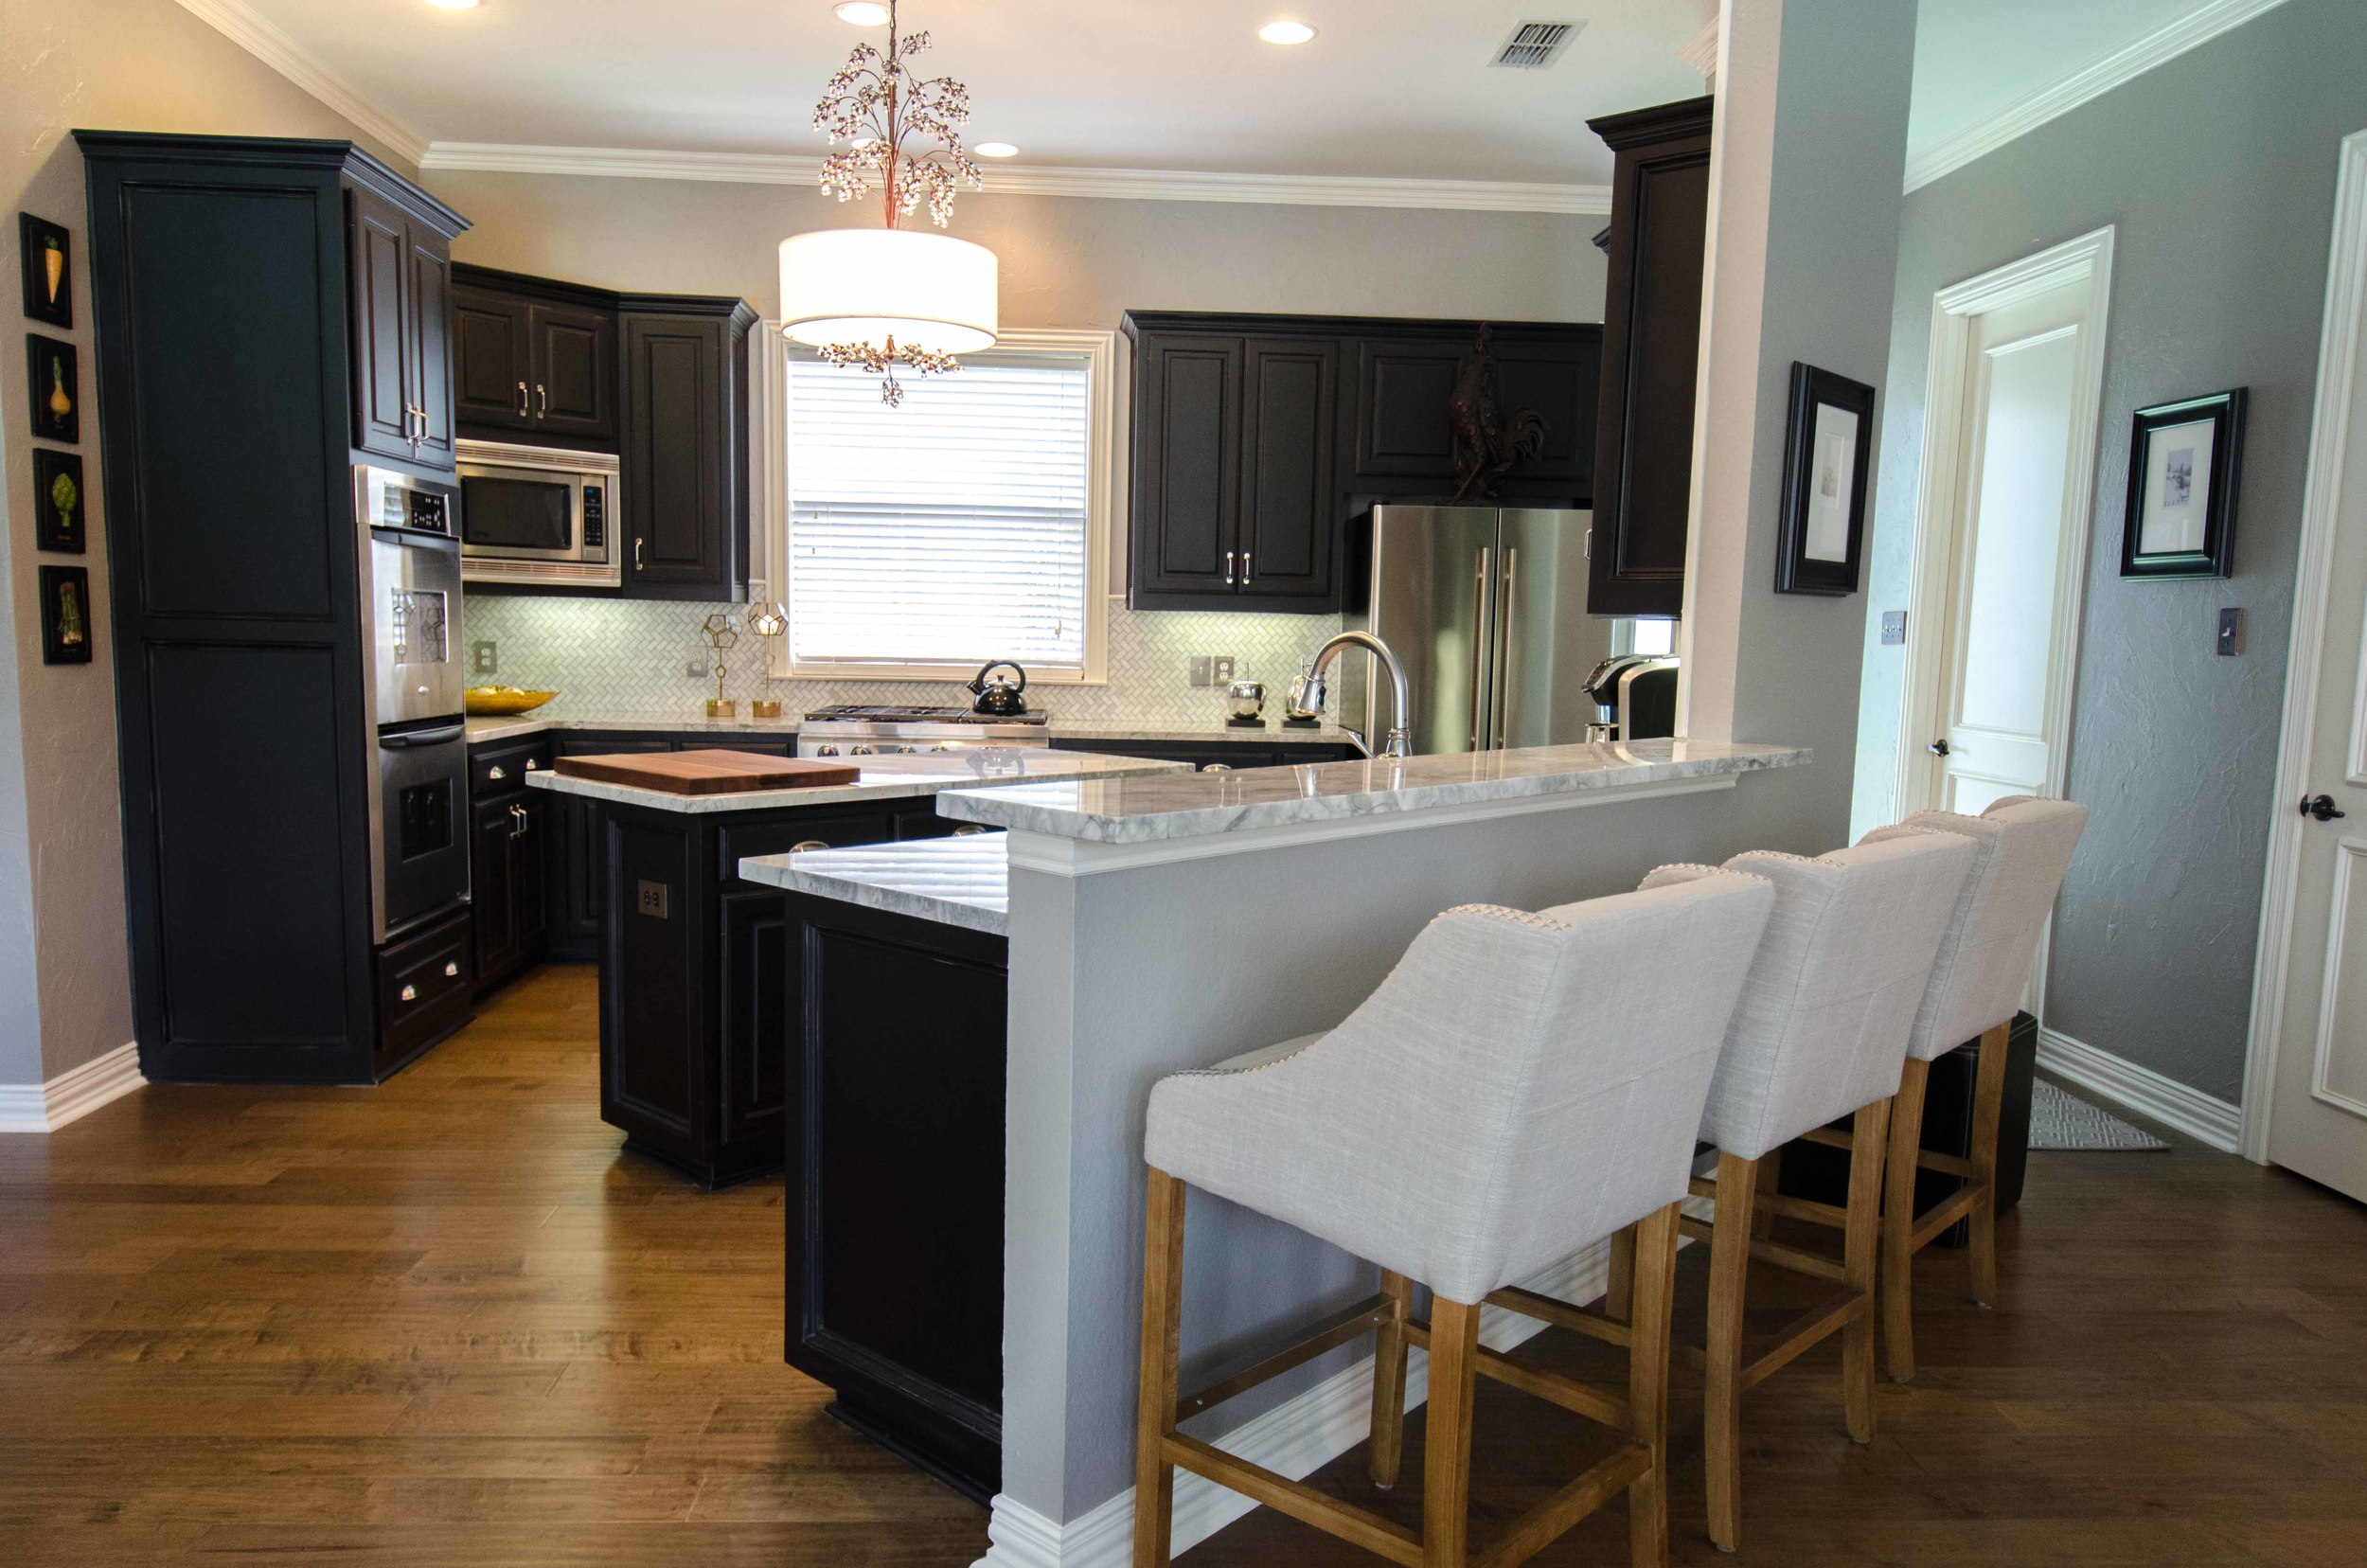 Linen bar stools in a black cabinet kitchen